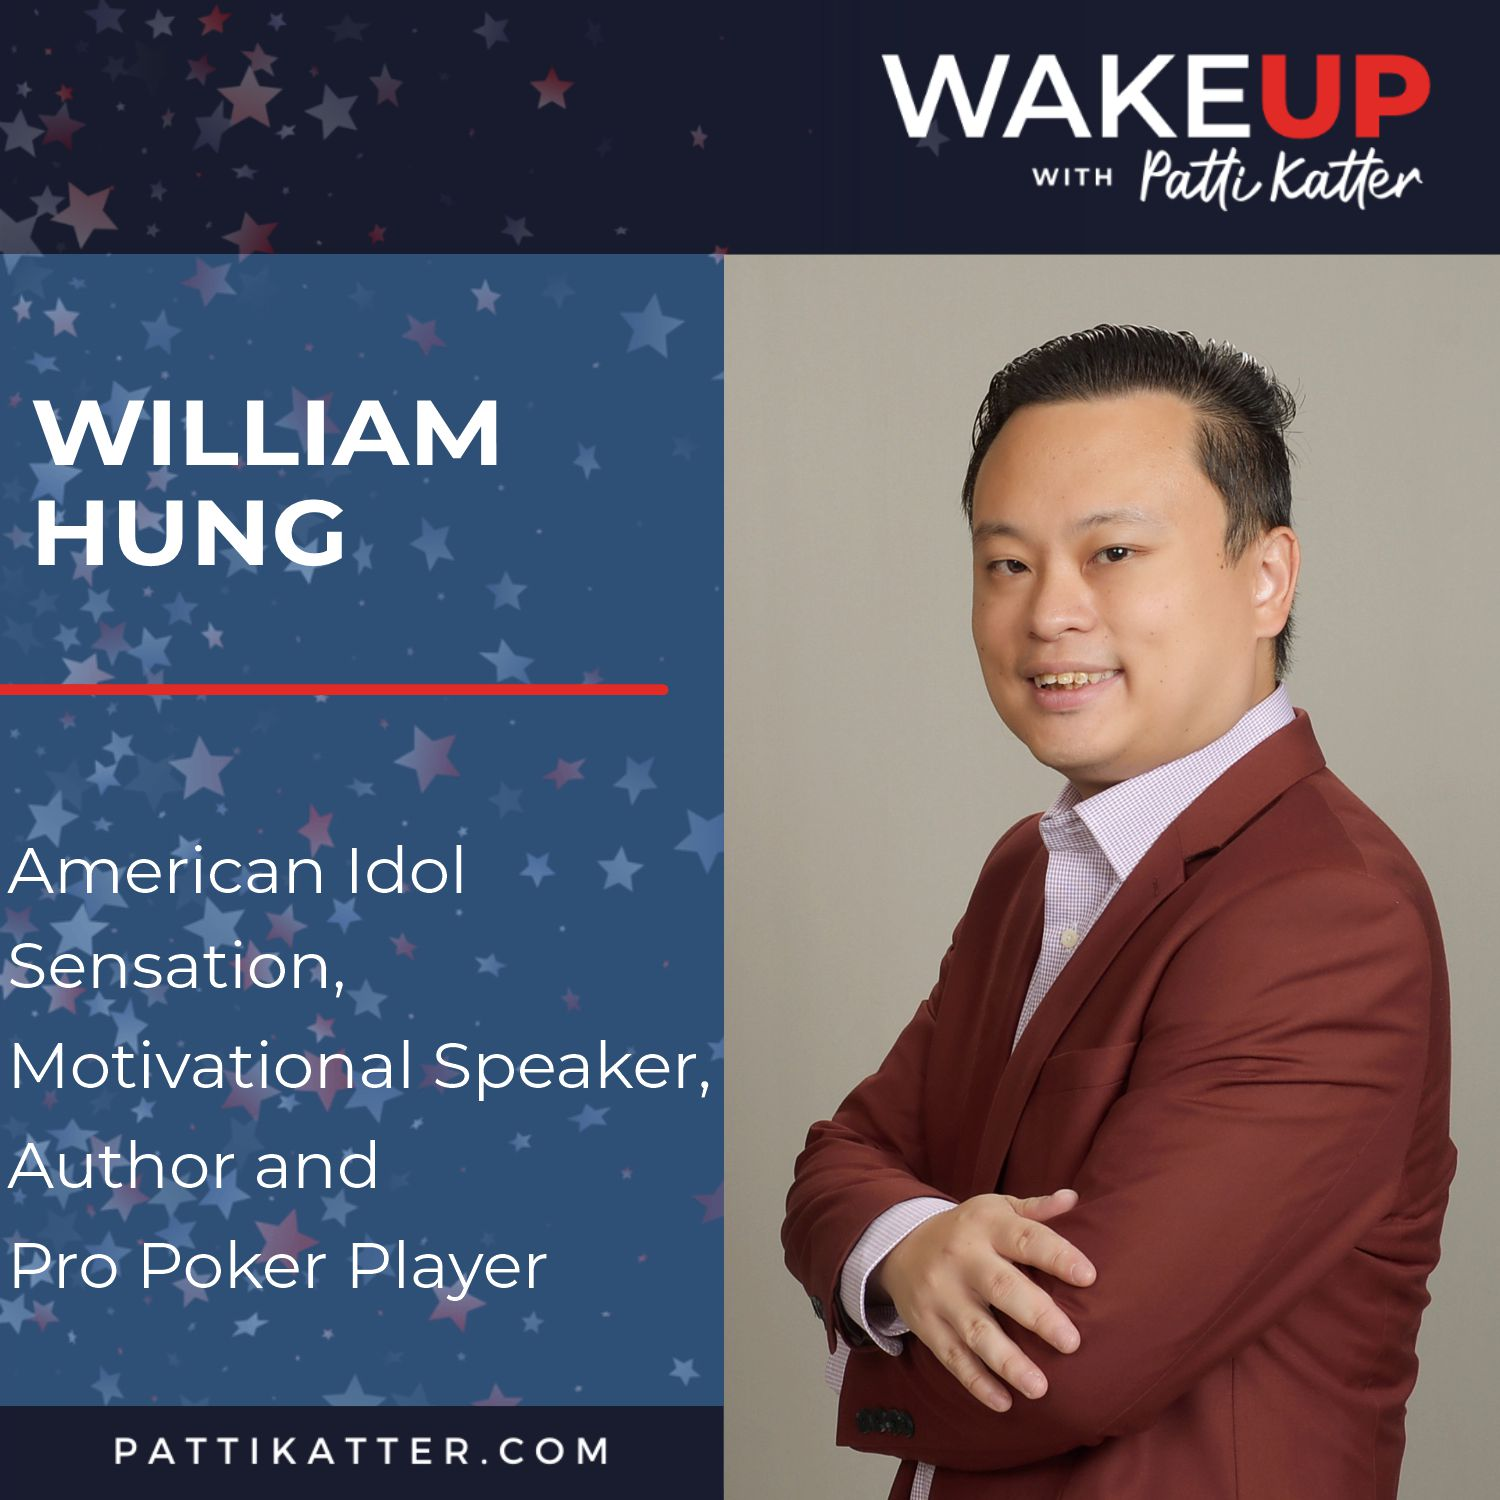 William Hung: American Idol Sensation, Motivational Speaker, Author and Pro Poker Player